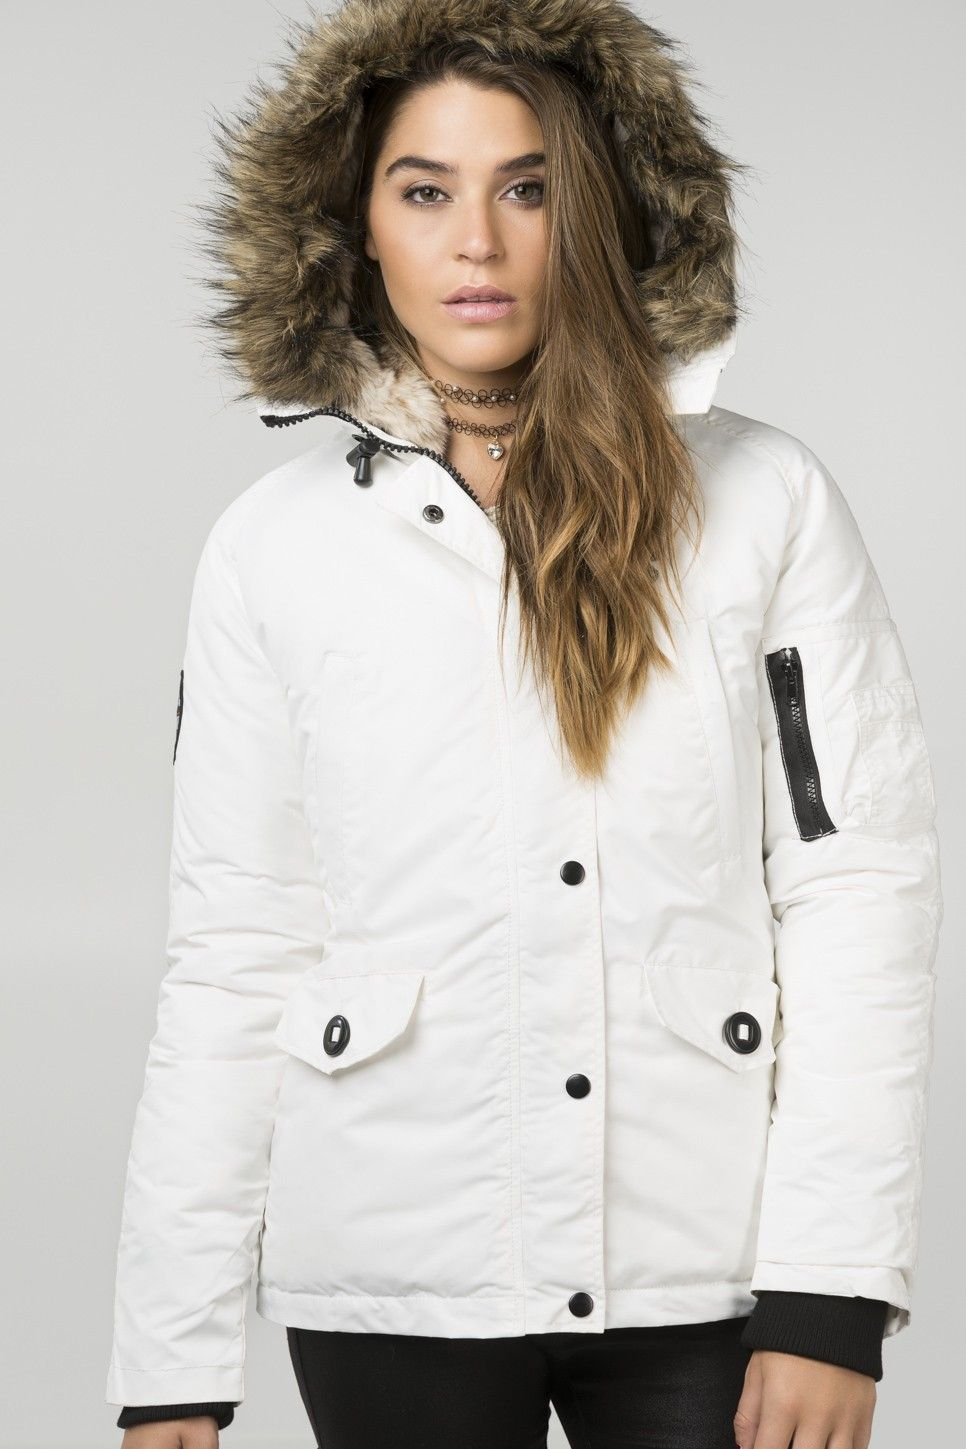 82 North white winter jacket | Ardene | Pinterest | Cold weather ...